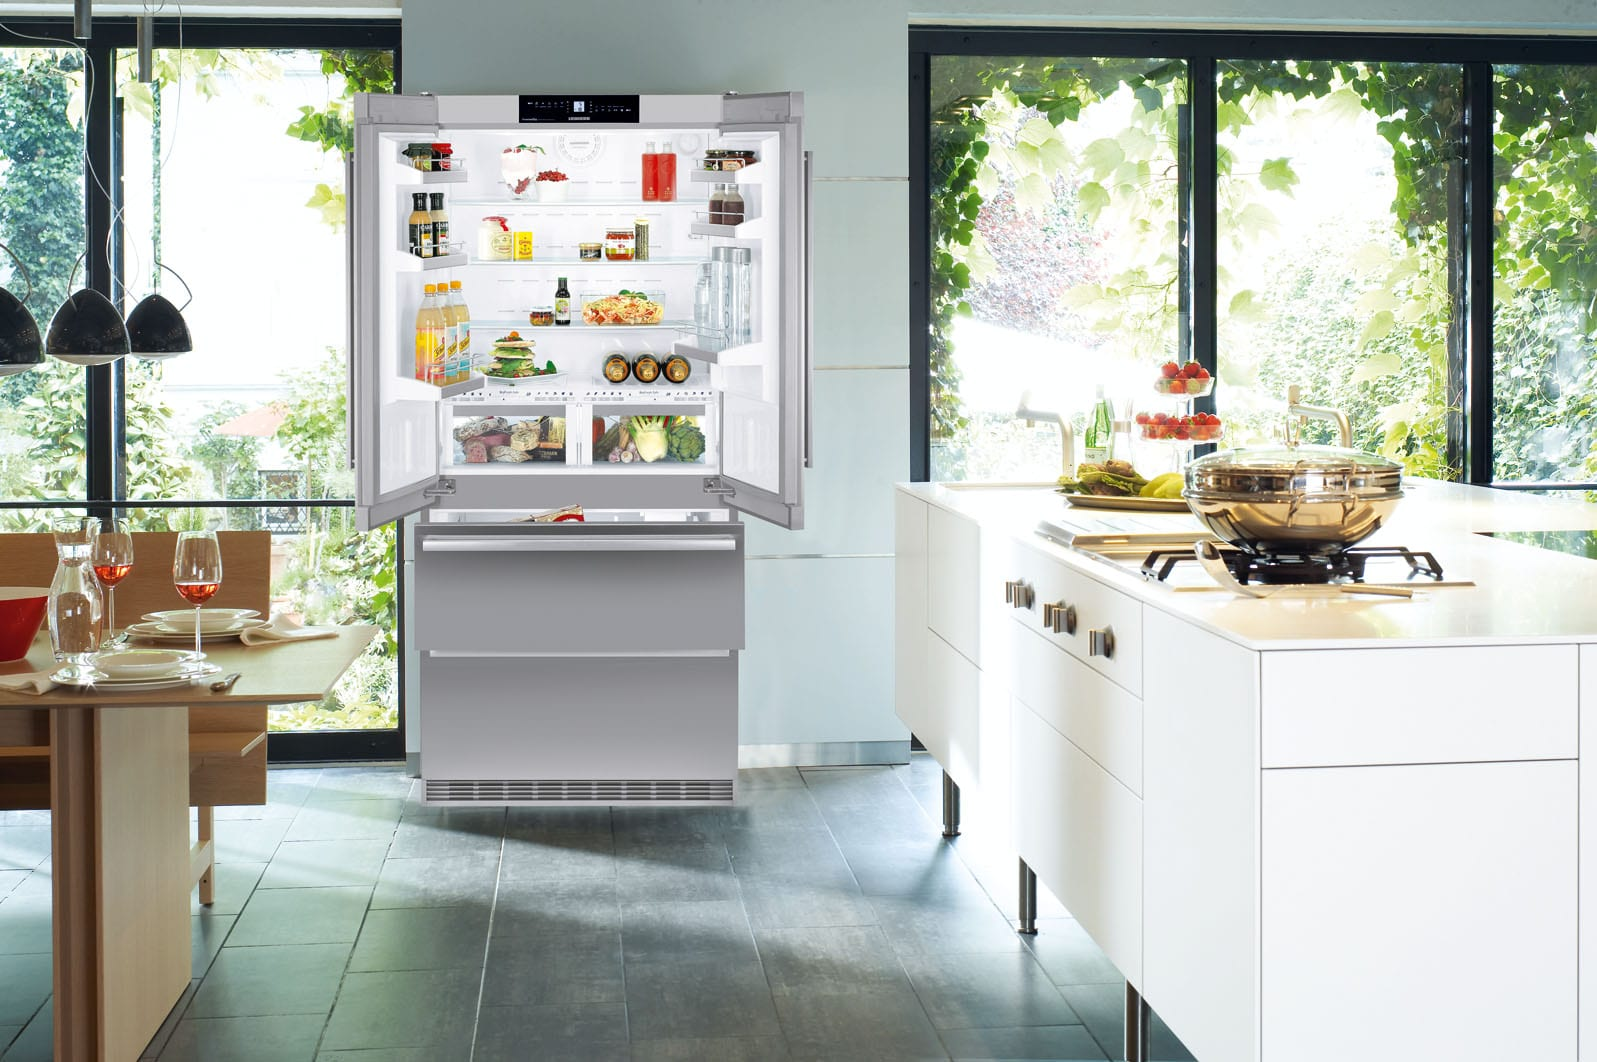 French Door Refrigerators Everything You Need To Know Freshmagazine